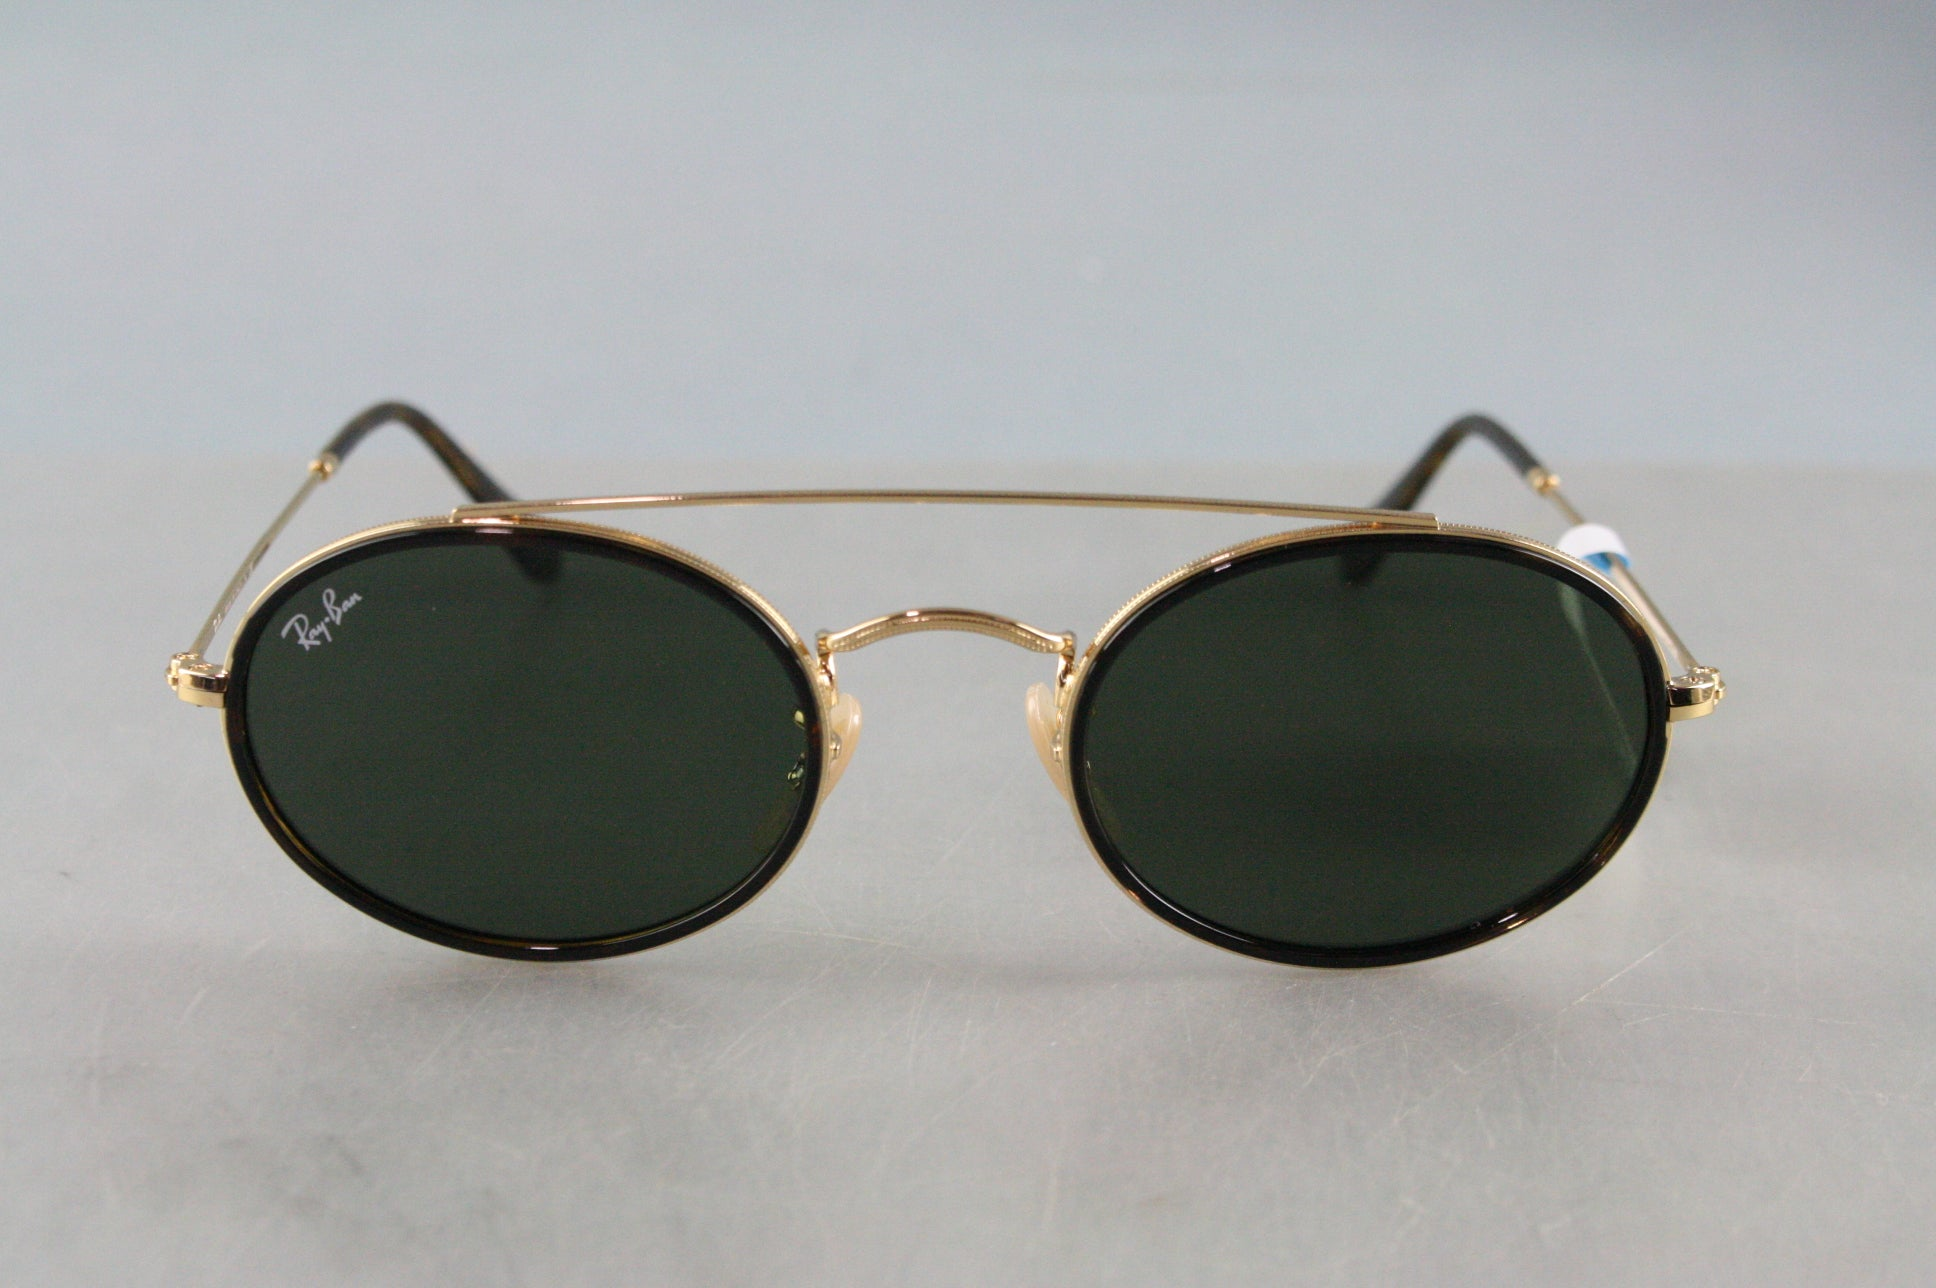 NEW Ray-Ban OVAL DOUBLE BRIDGE RB 3847N Gold/Green (9121/31) Sunglasses